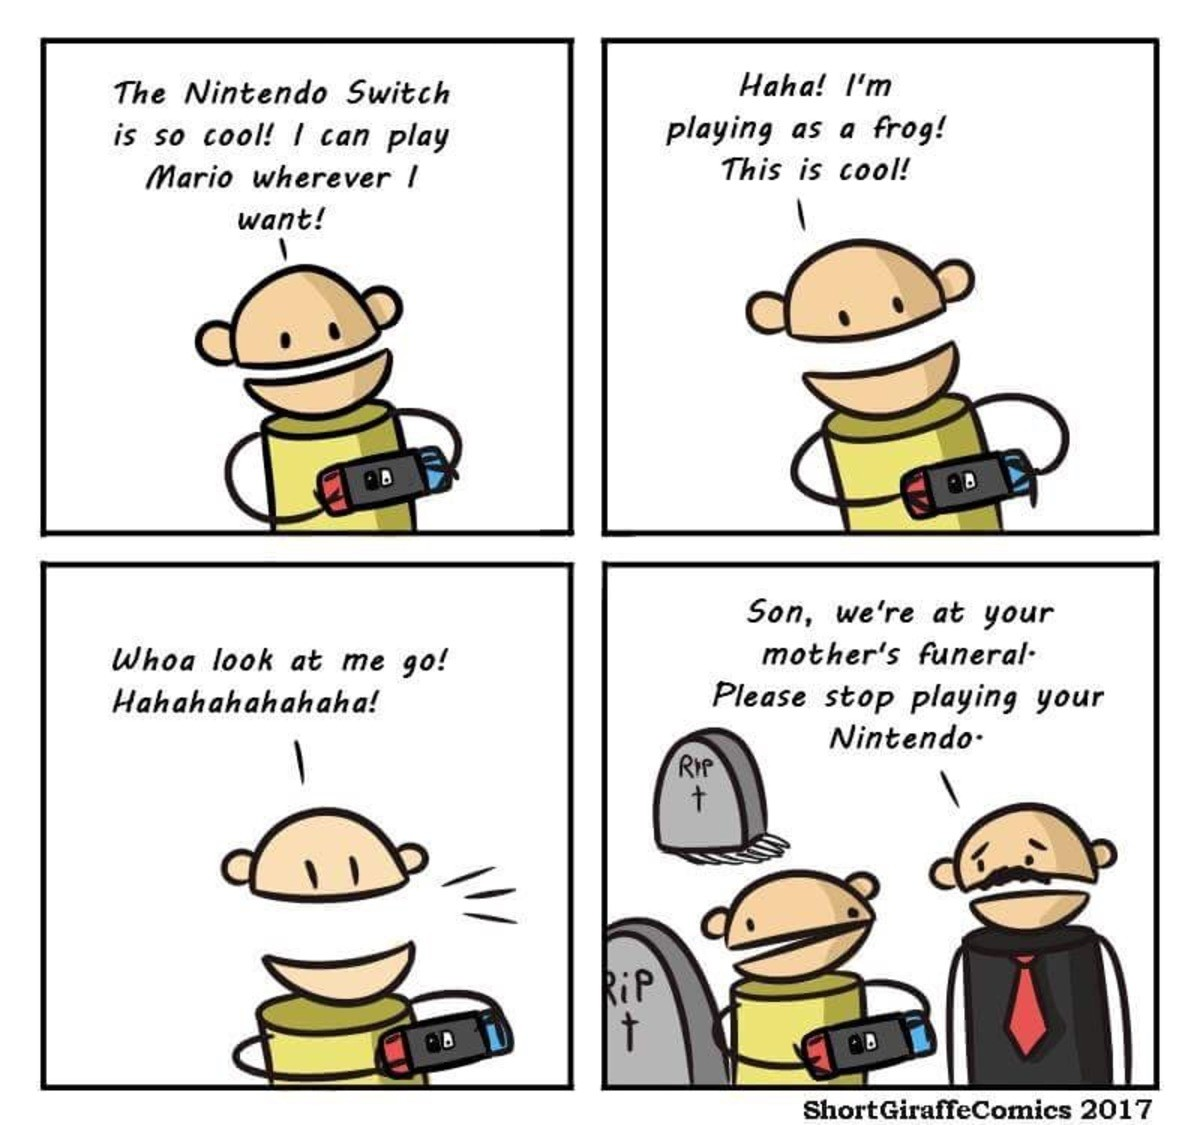 Nintendo Switch. What a nifty little console! join list: ShortGiraffeComics (44 subs)Mention History.. I would do the same at a canadian funeral